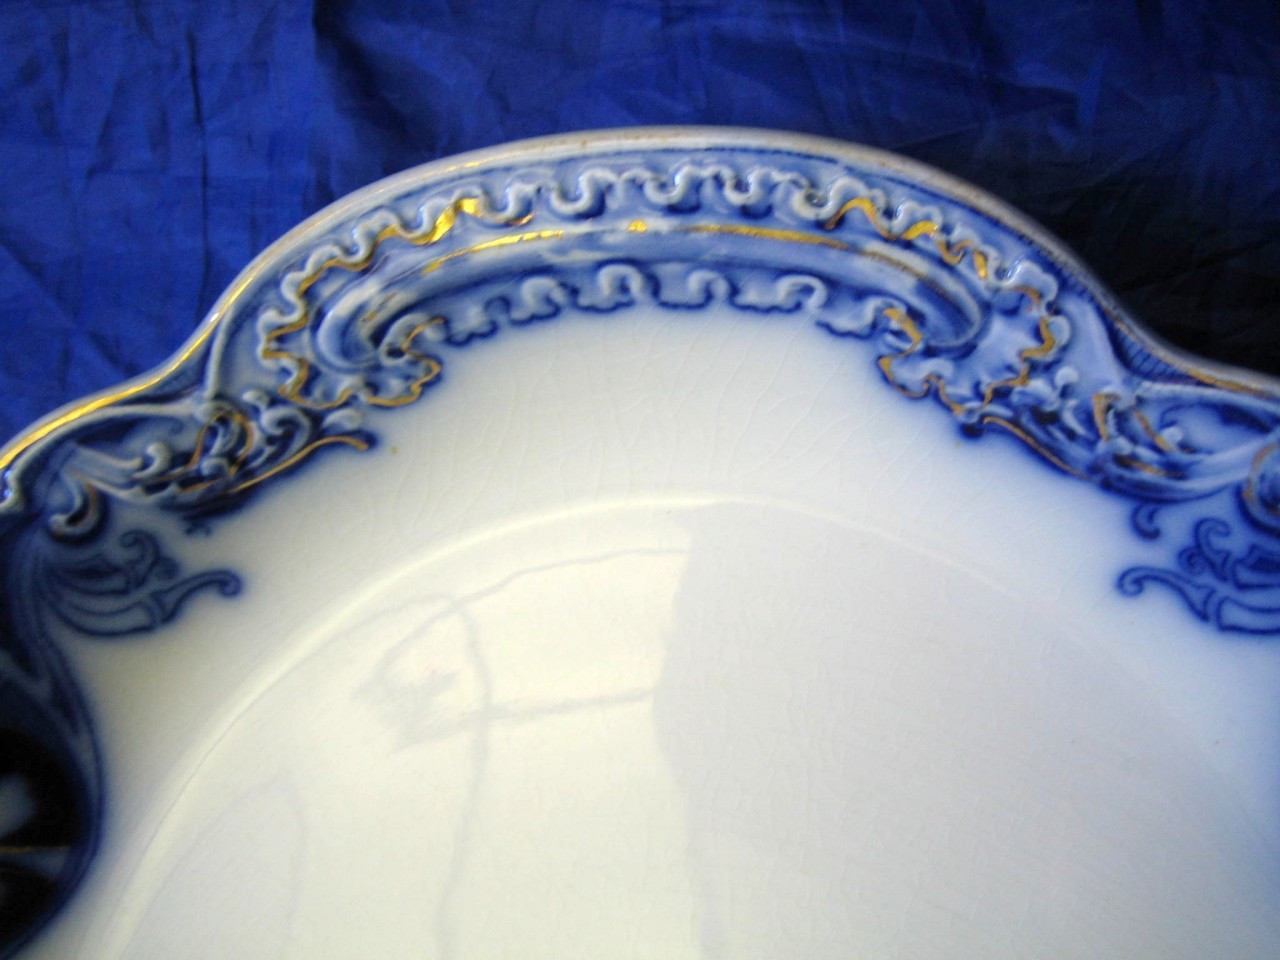 HUGE Flow Blue Shamrock Gold Antique Handled Tray Platter Edge www.DecorativeDishes.net